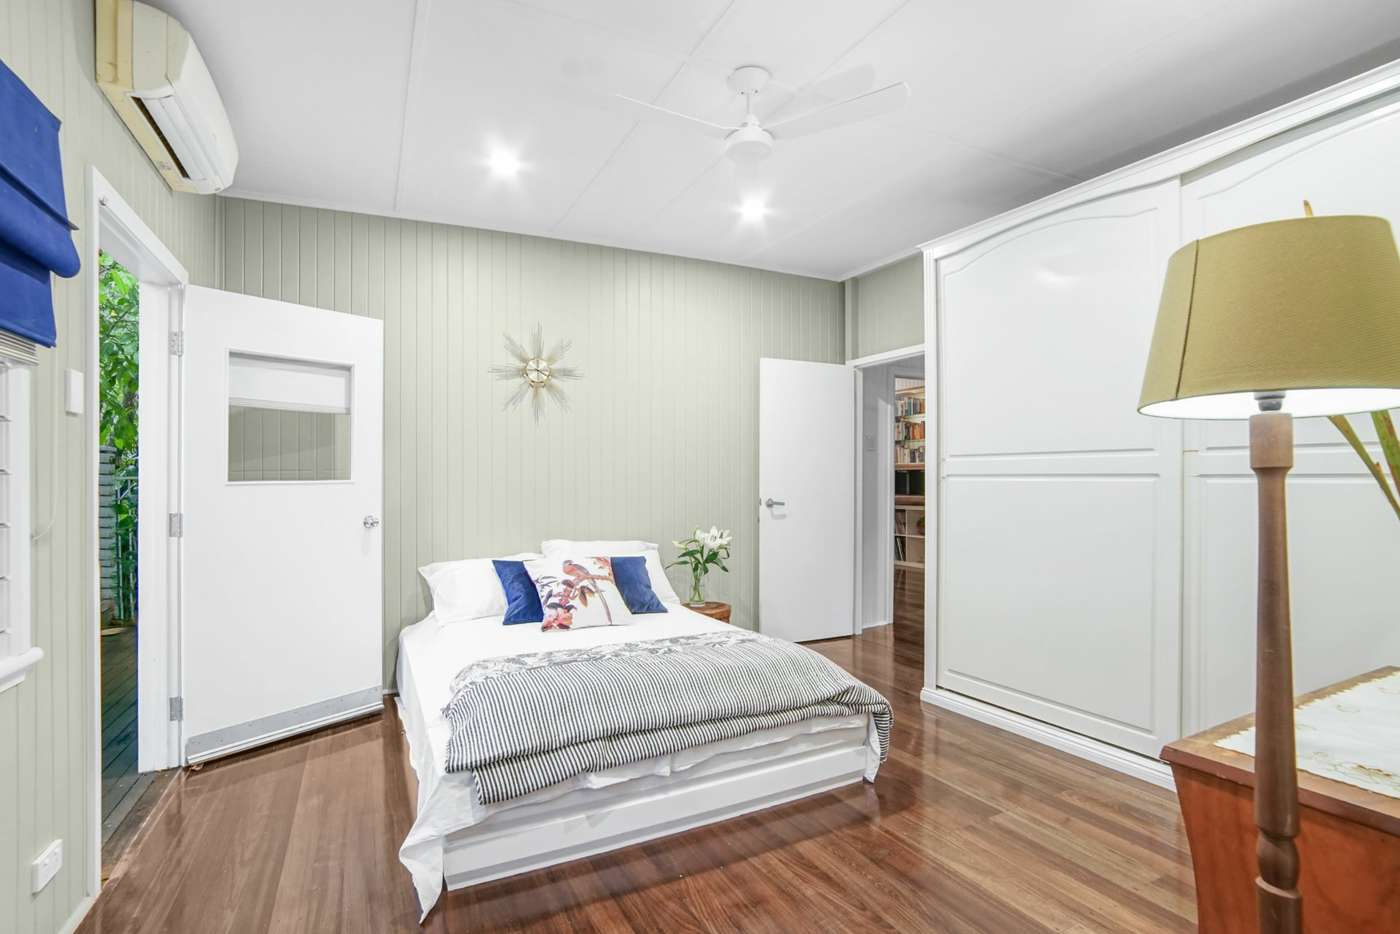 Sixth view of Homely house listing, 15 Edgar Street, Bungalow QLD 4870